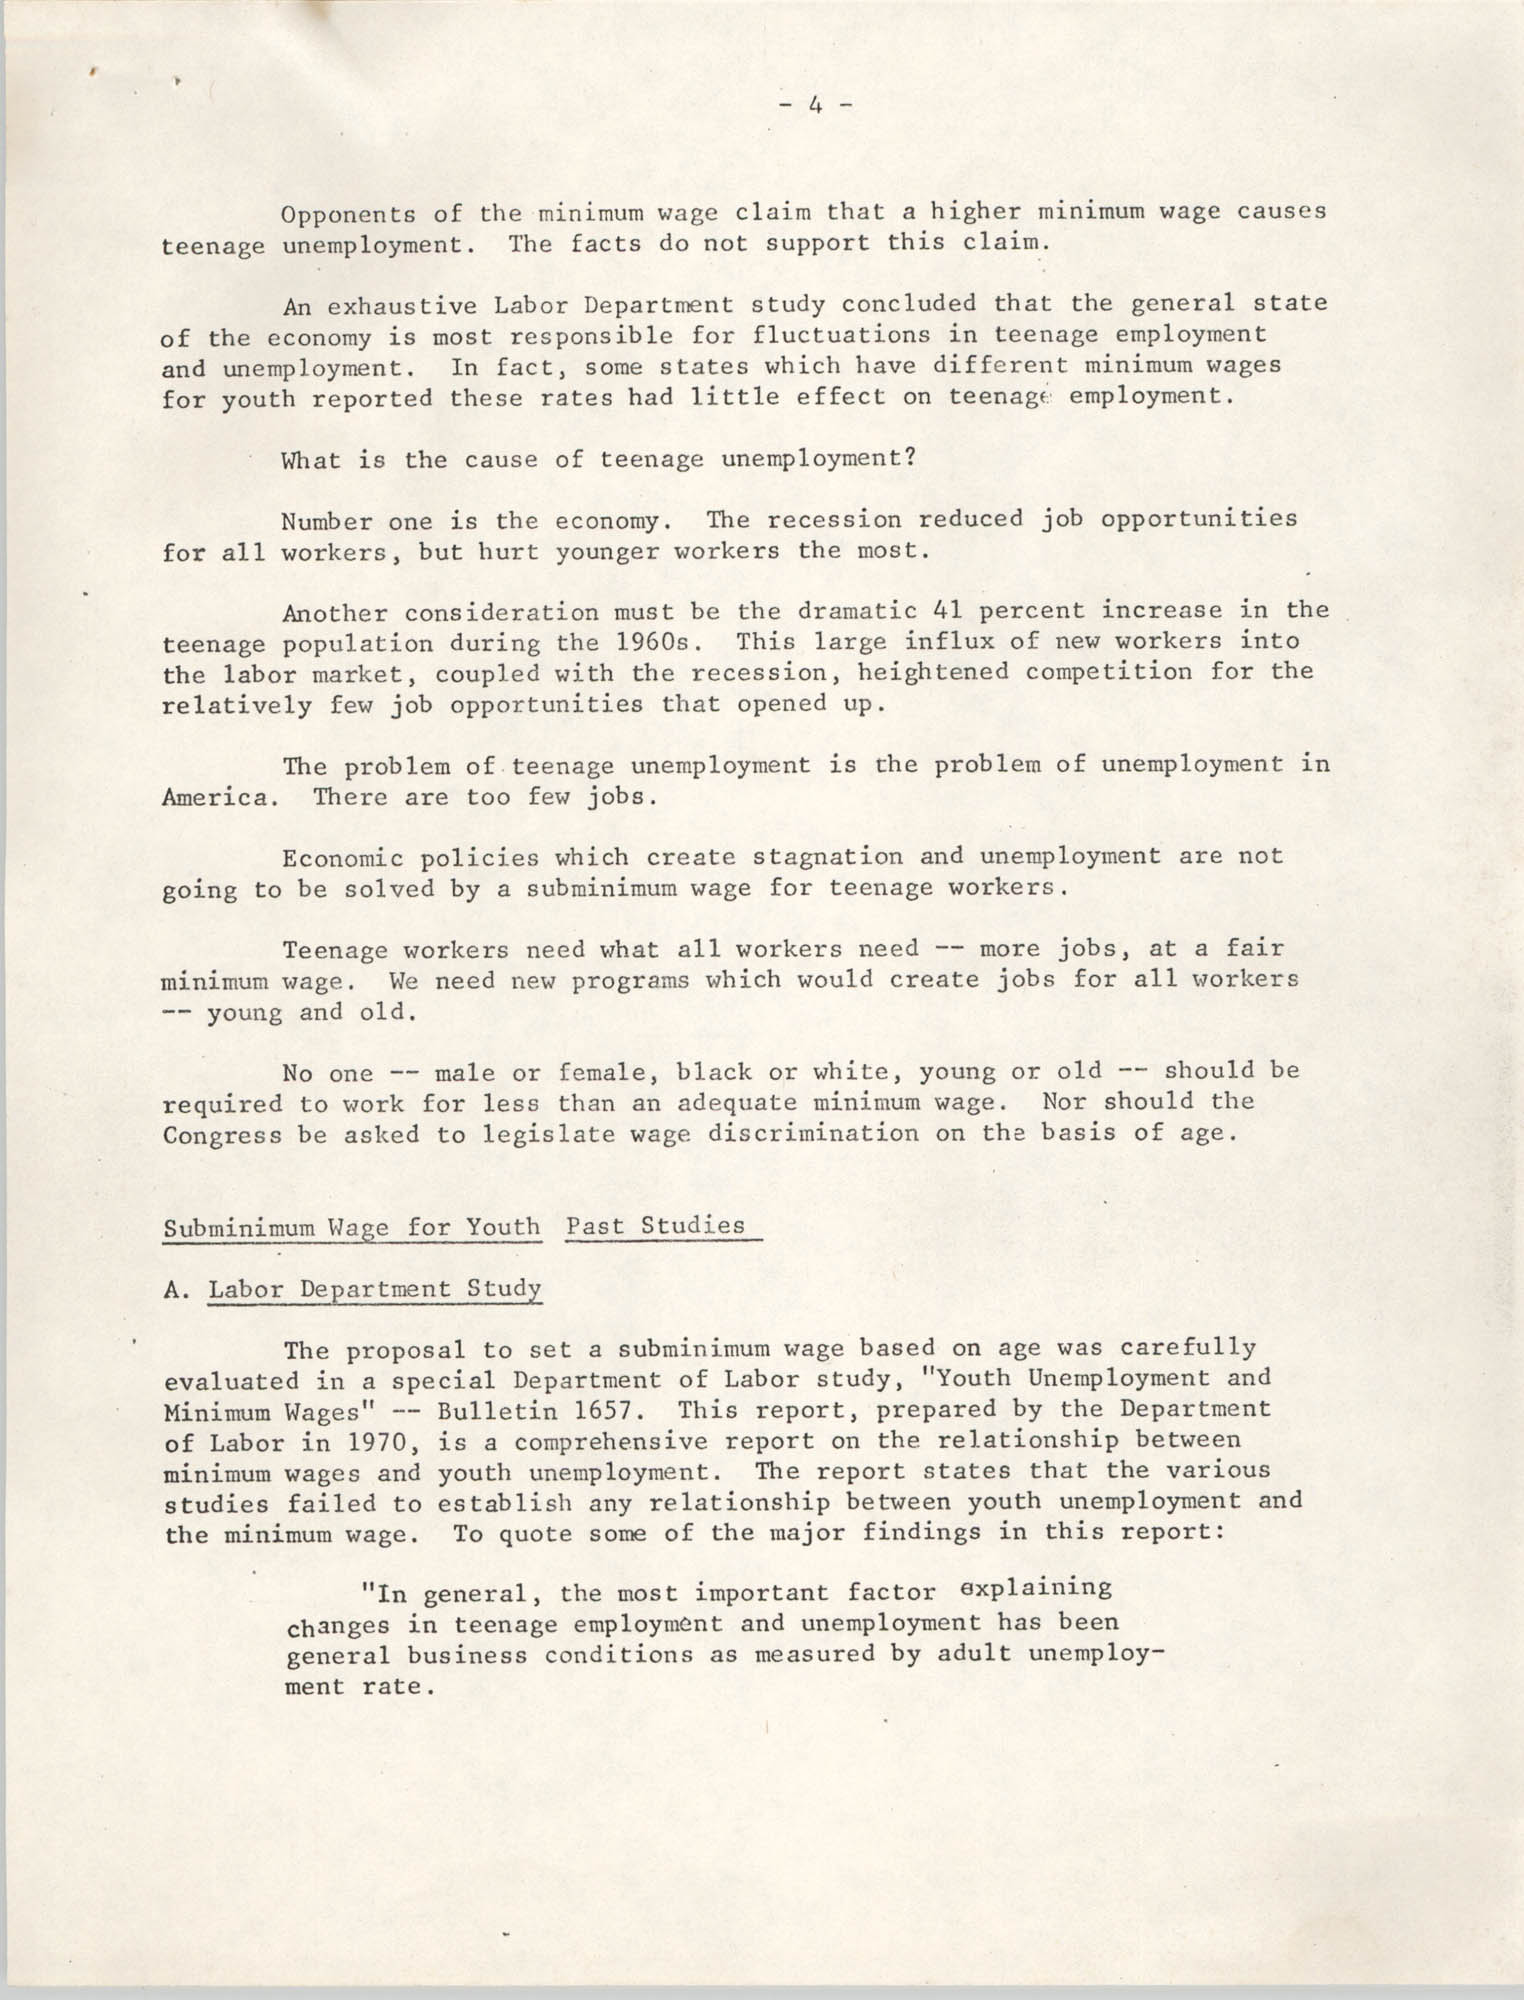 1977 Amendments to the Fair Labor Standards Act, Page 4